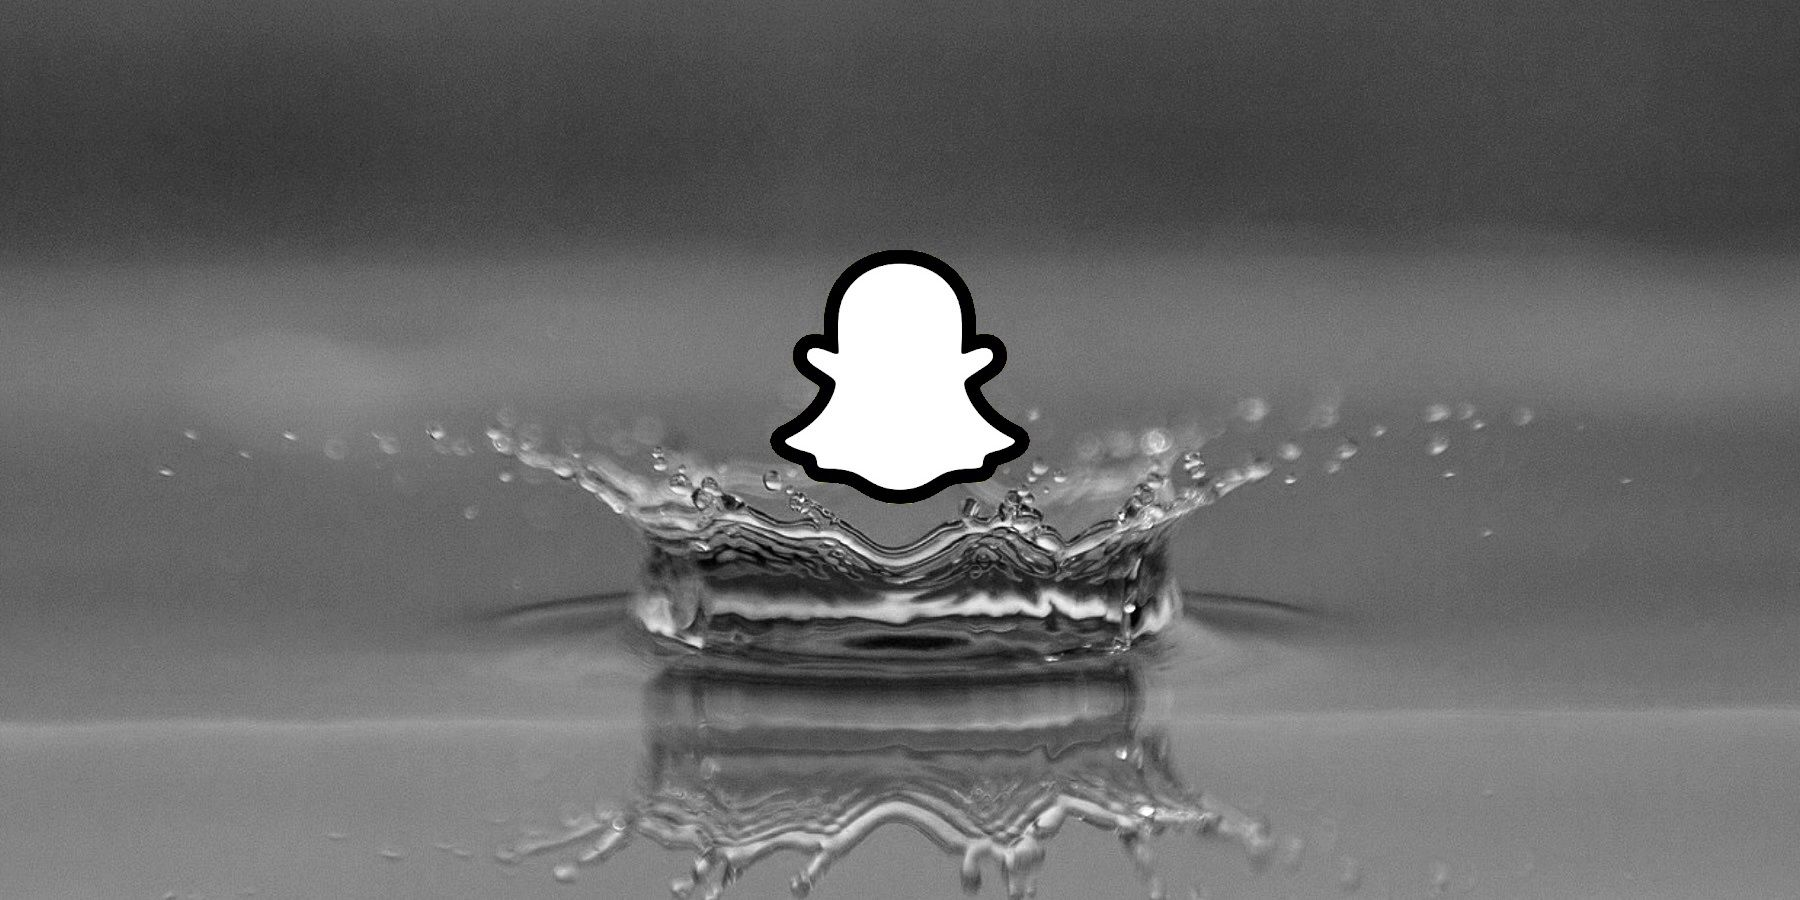 Snapchat Filters: How To Reverse, Slow Down Or Speed Up Videos